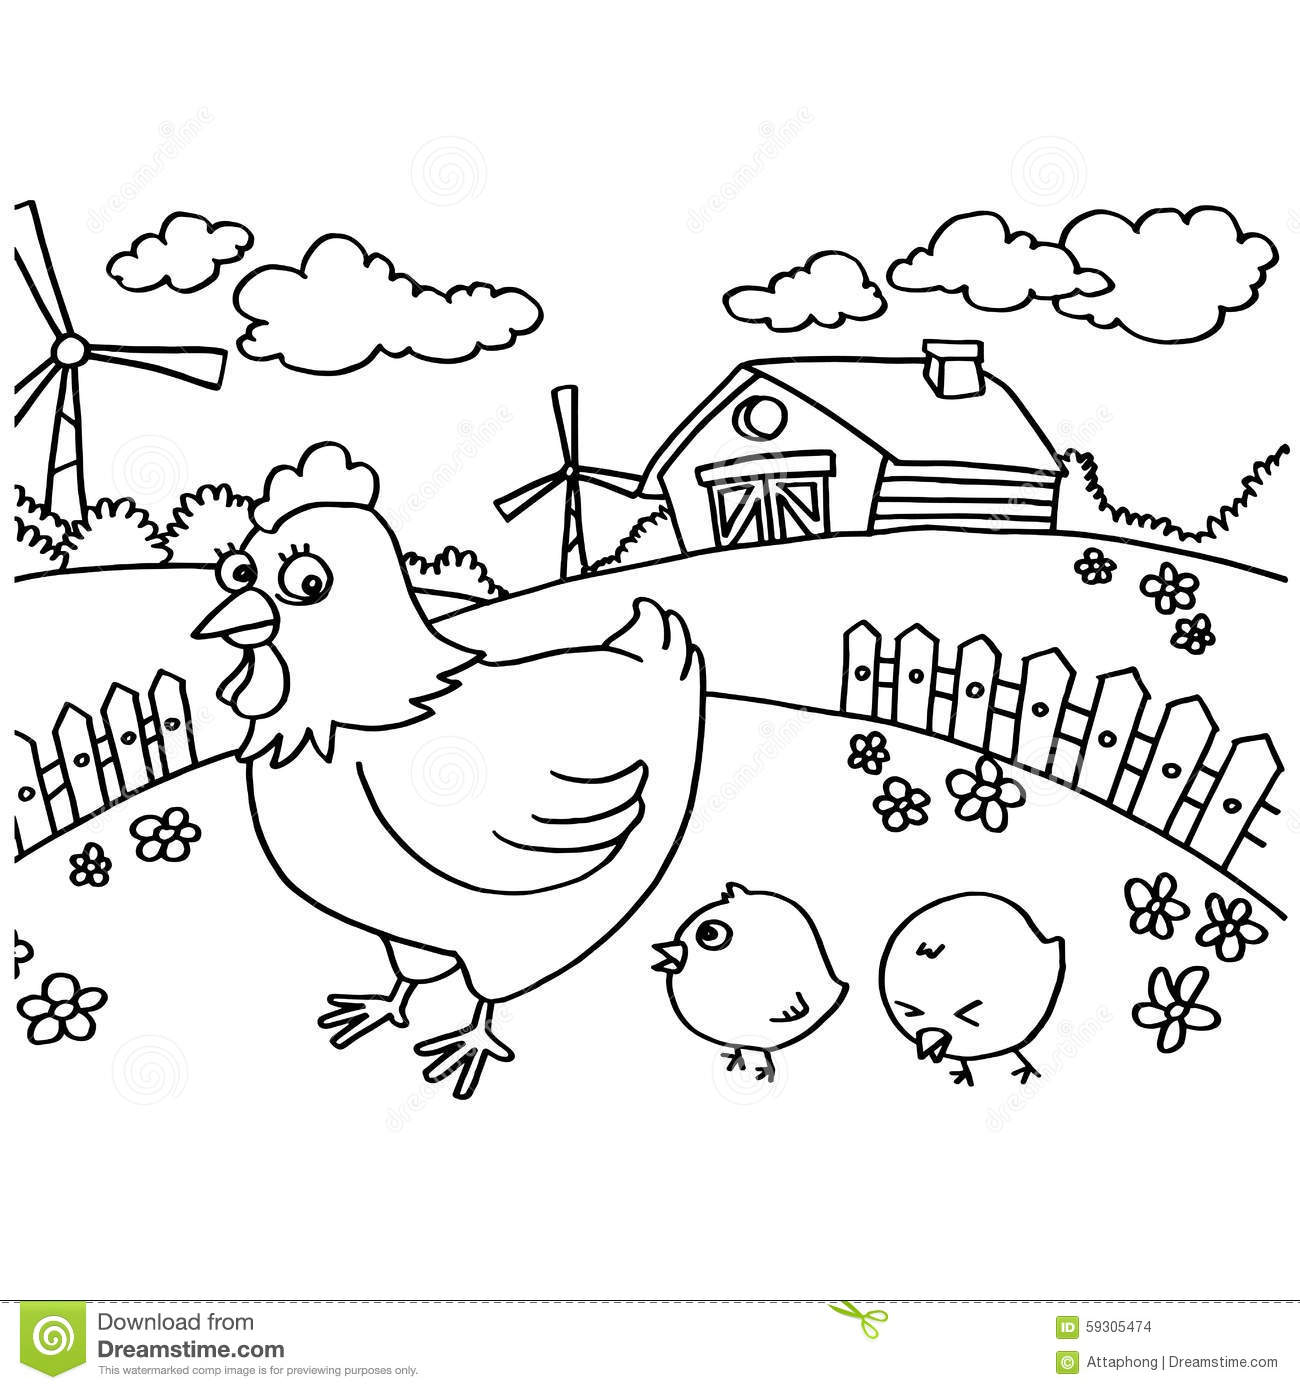 Chicken Nugget Coloring Page At Getcolorings